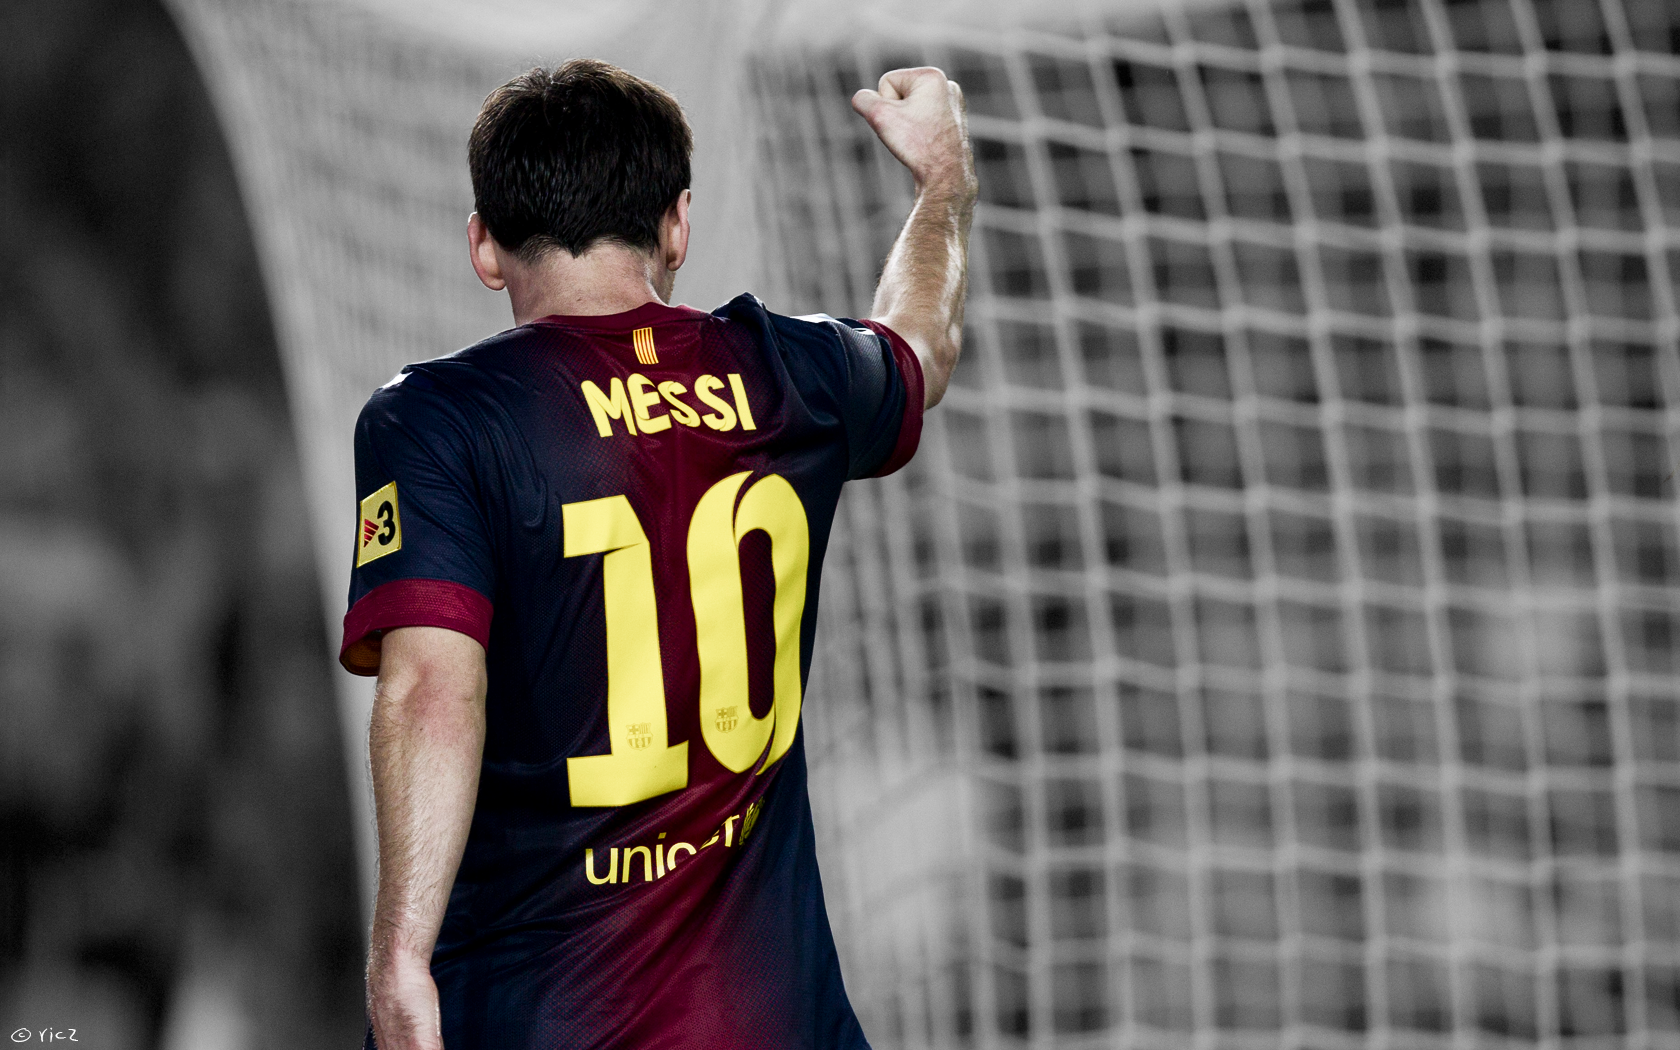 lionel messi hd wallpaper 2014 - victory - http://www